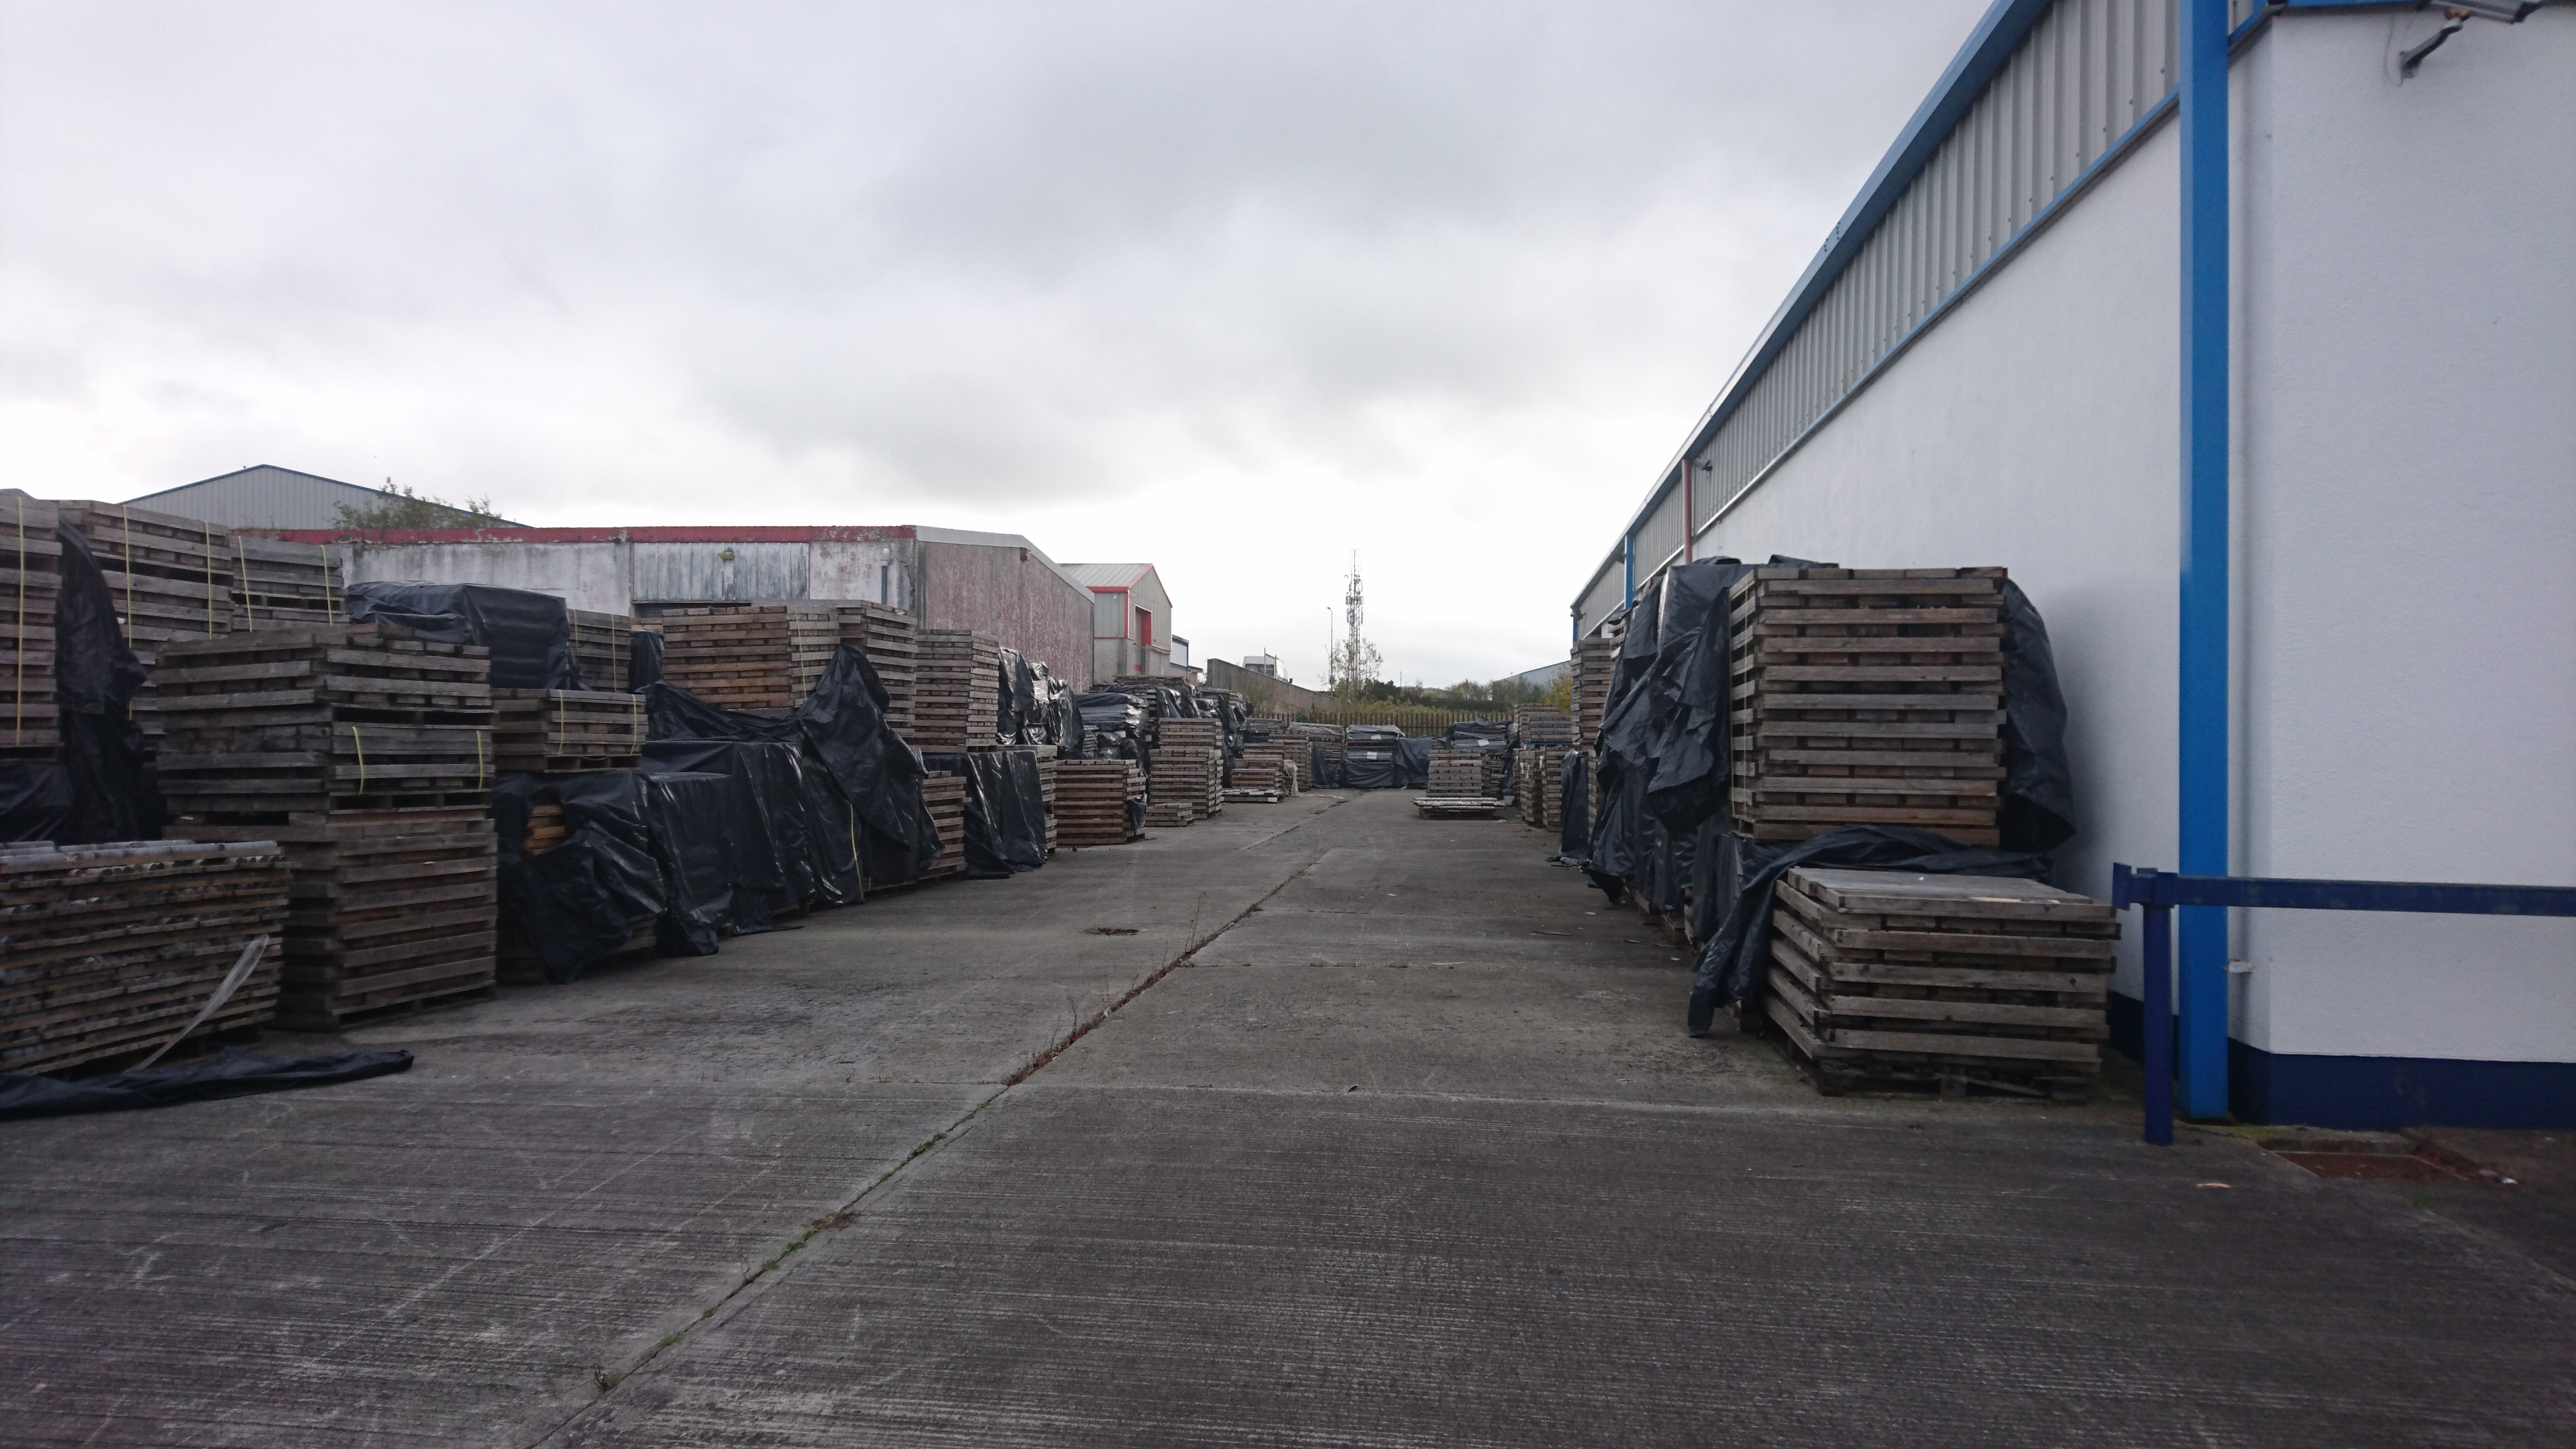 Outside Group Eleven's Mullingar core shack, the company has amassed all the previous core from Teck drilling at Ballinalack. Photo by Richard Quarisa.